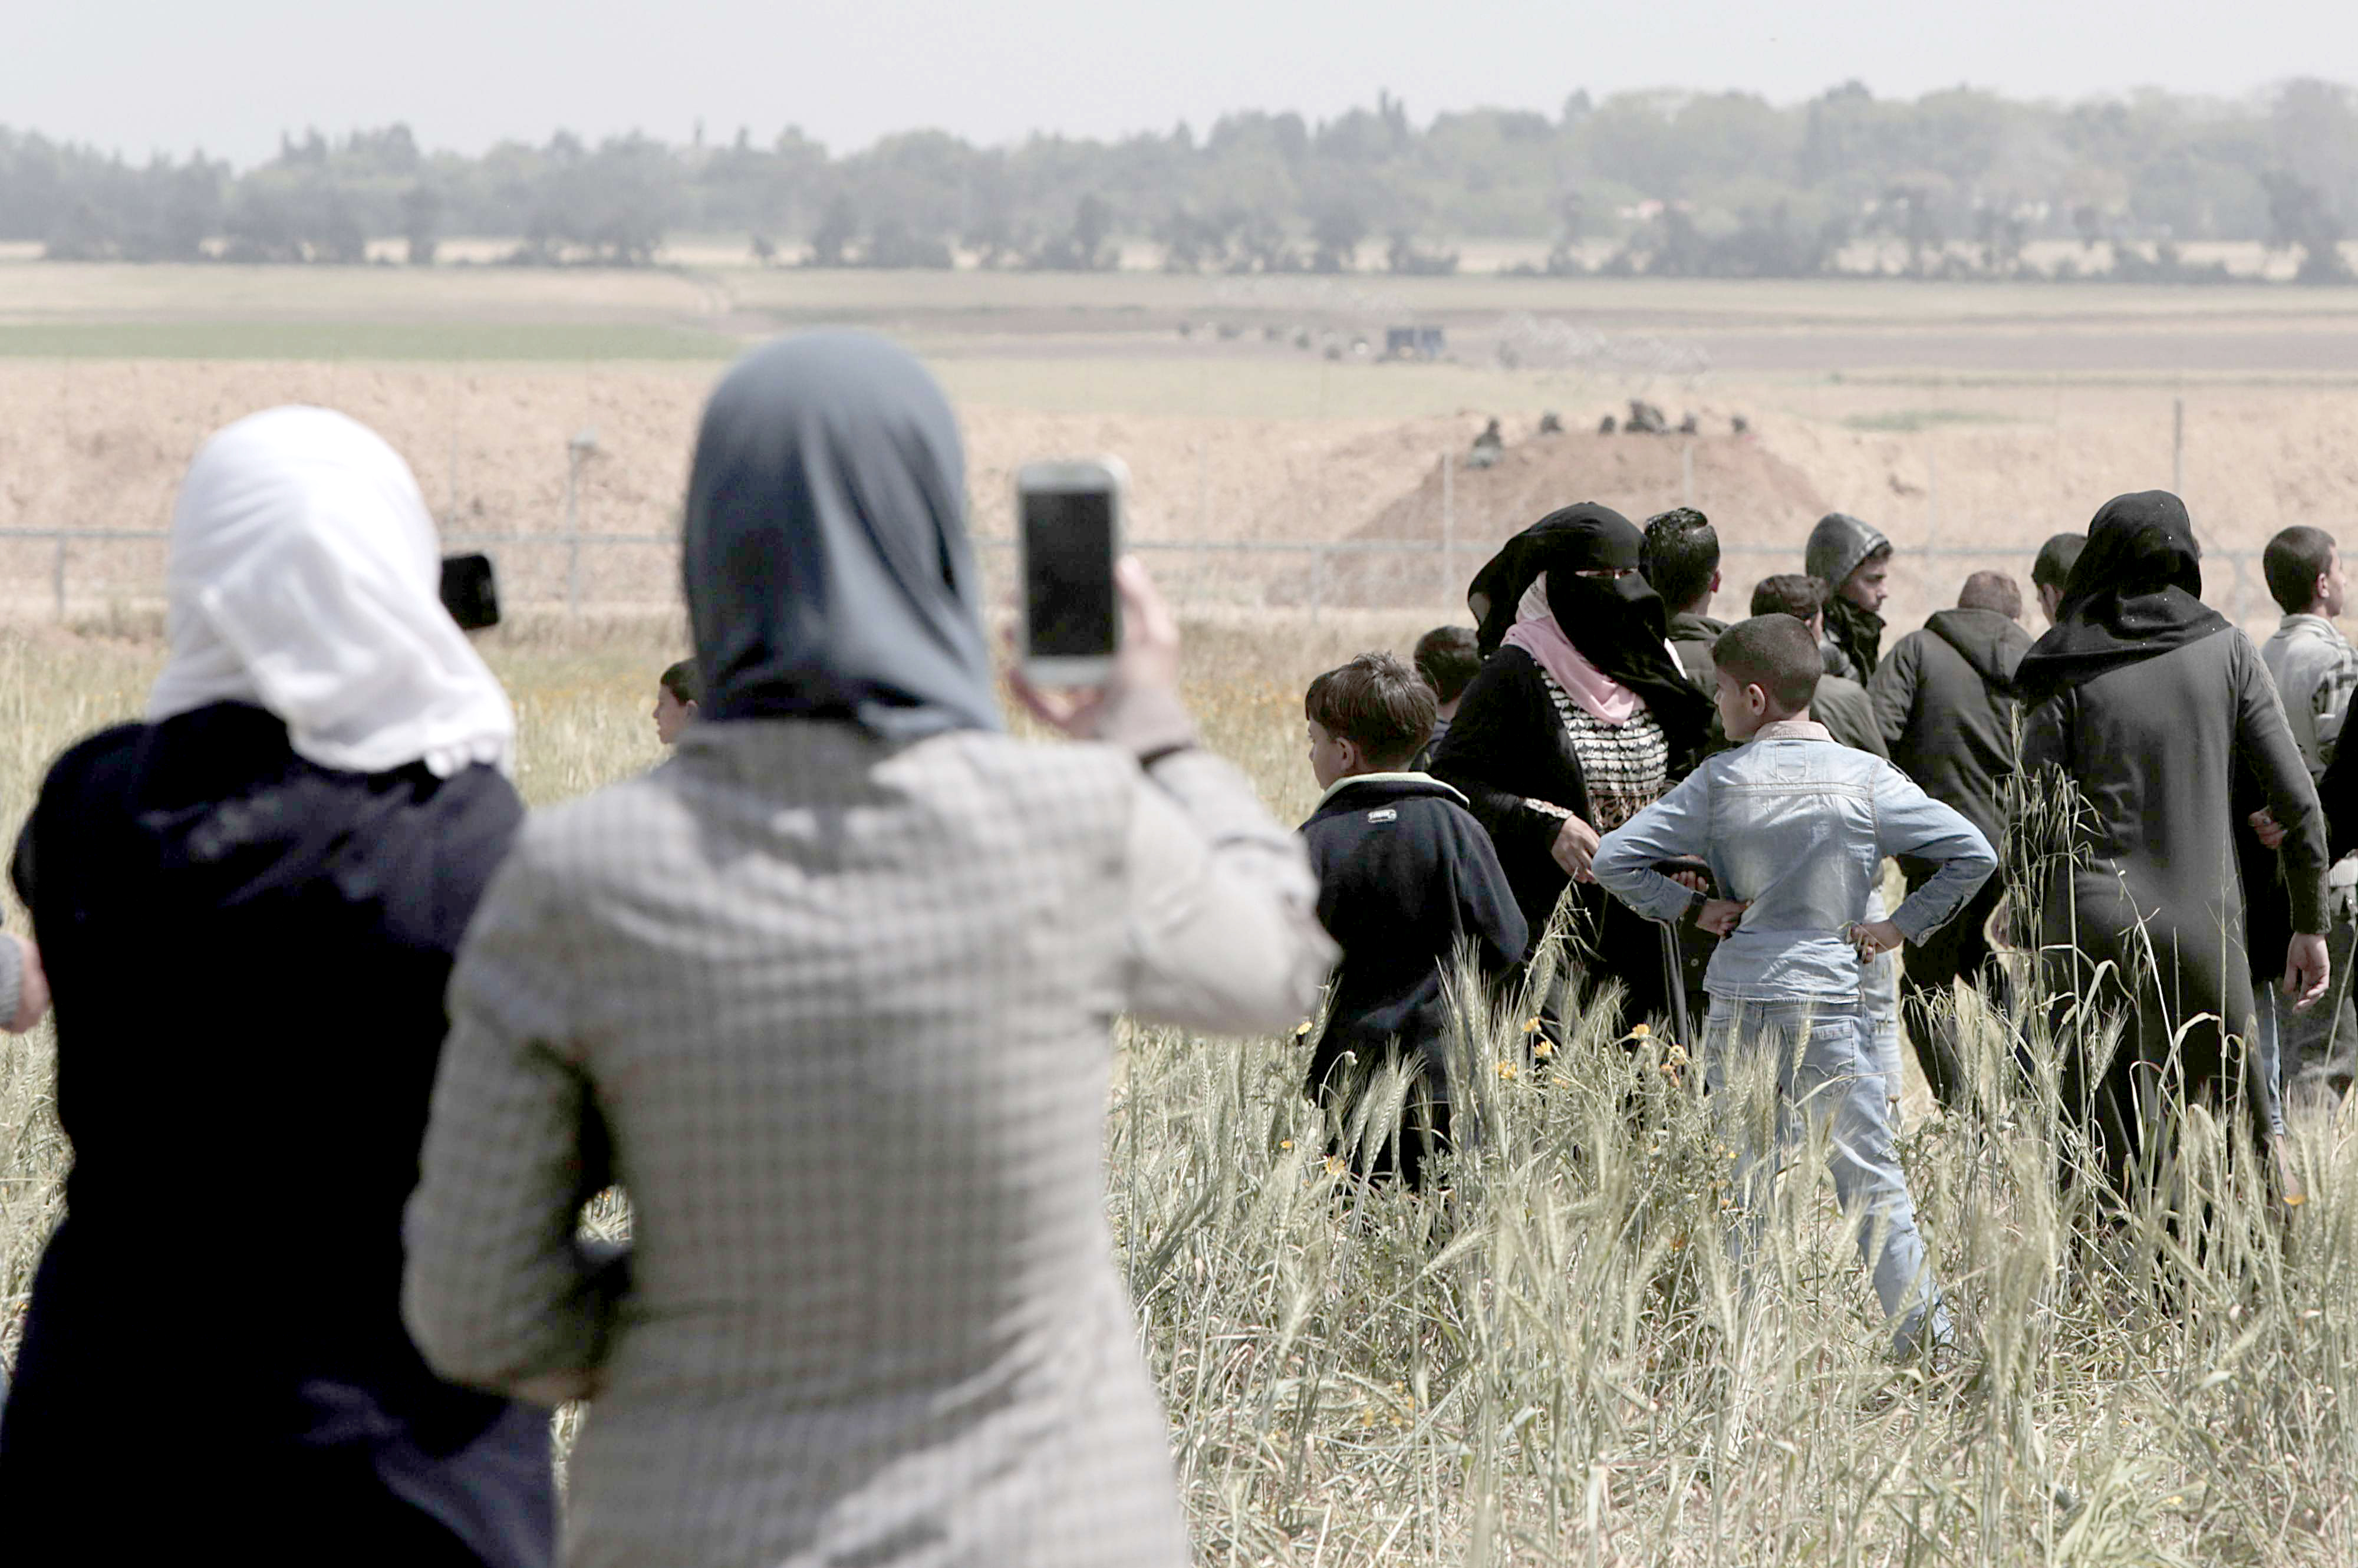 Capturing the violence. Palestinian women use their mobile phones to take photos during clashes with Israeli troops, last March. (AP)